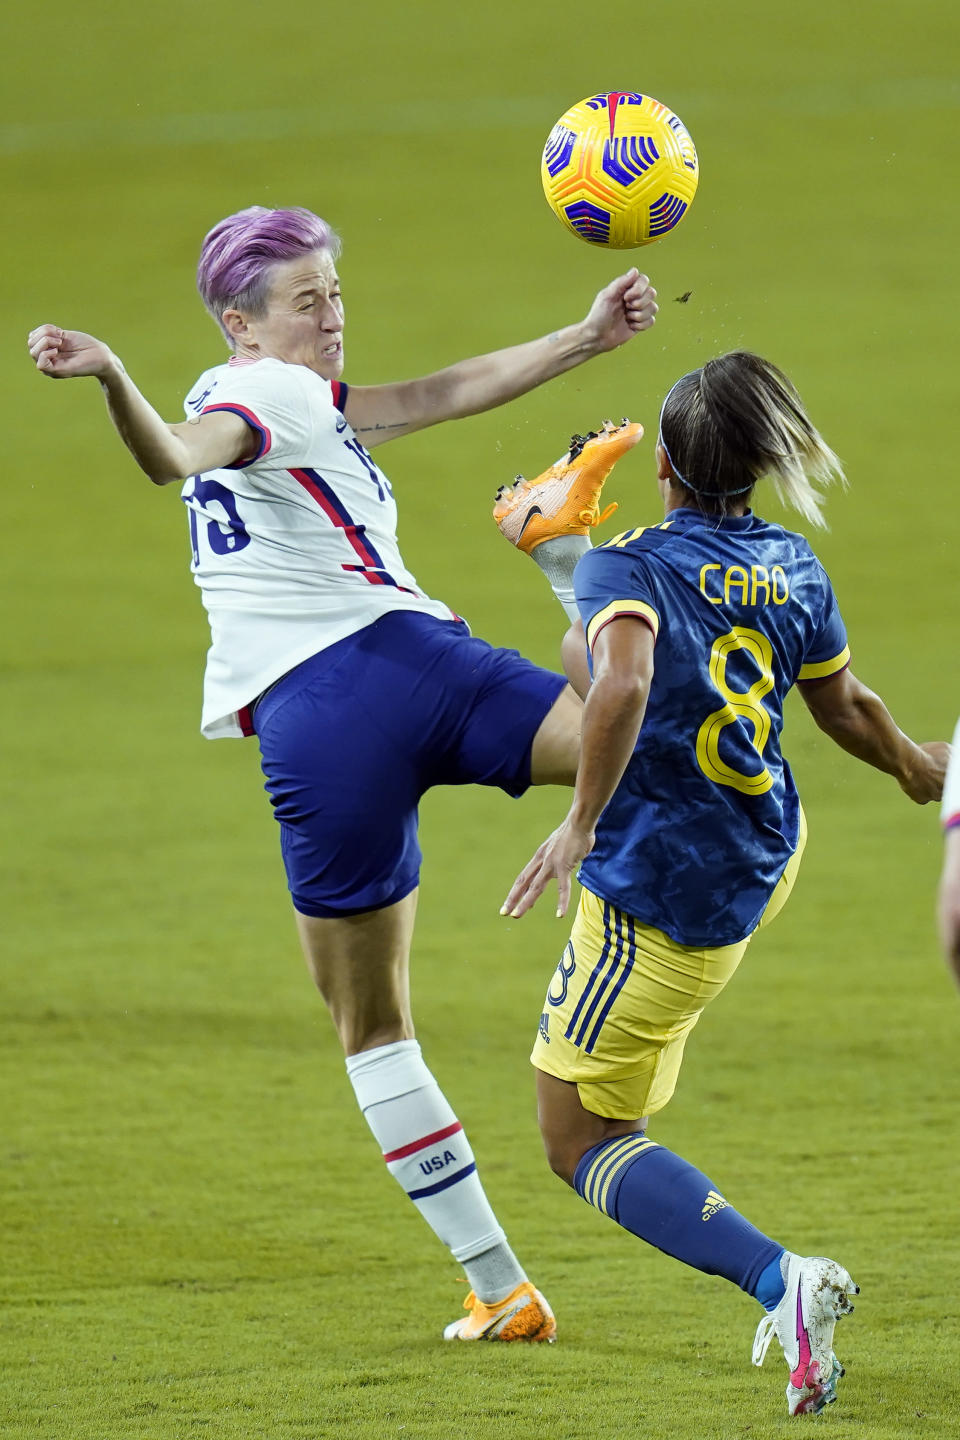 United States forward Megan Rapinoe, left tries to control the ball as she gets in front of Colombia midfielder Jessica Caro (8) during the first half of an international friendly soccer match, Monday, Jan. 18, 2021, in Orlando, Fla. (AP Photo/John Raoux)